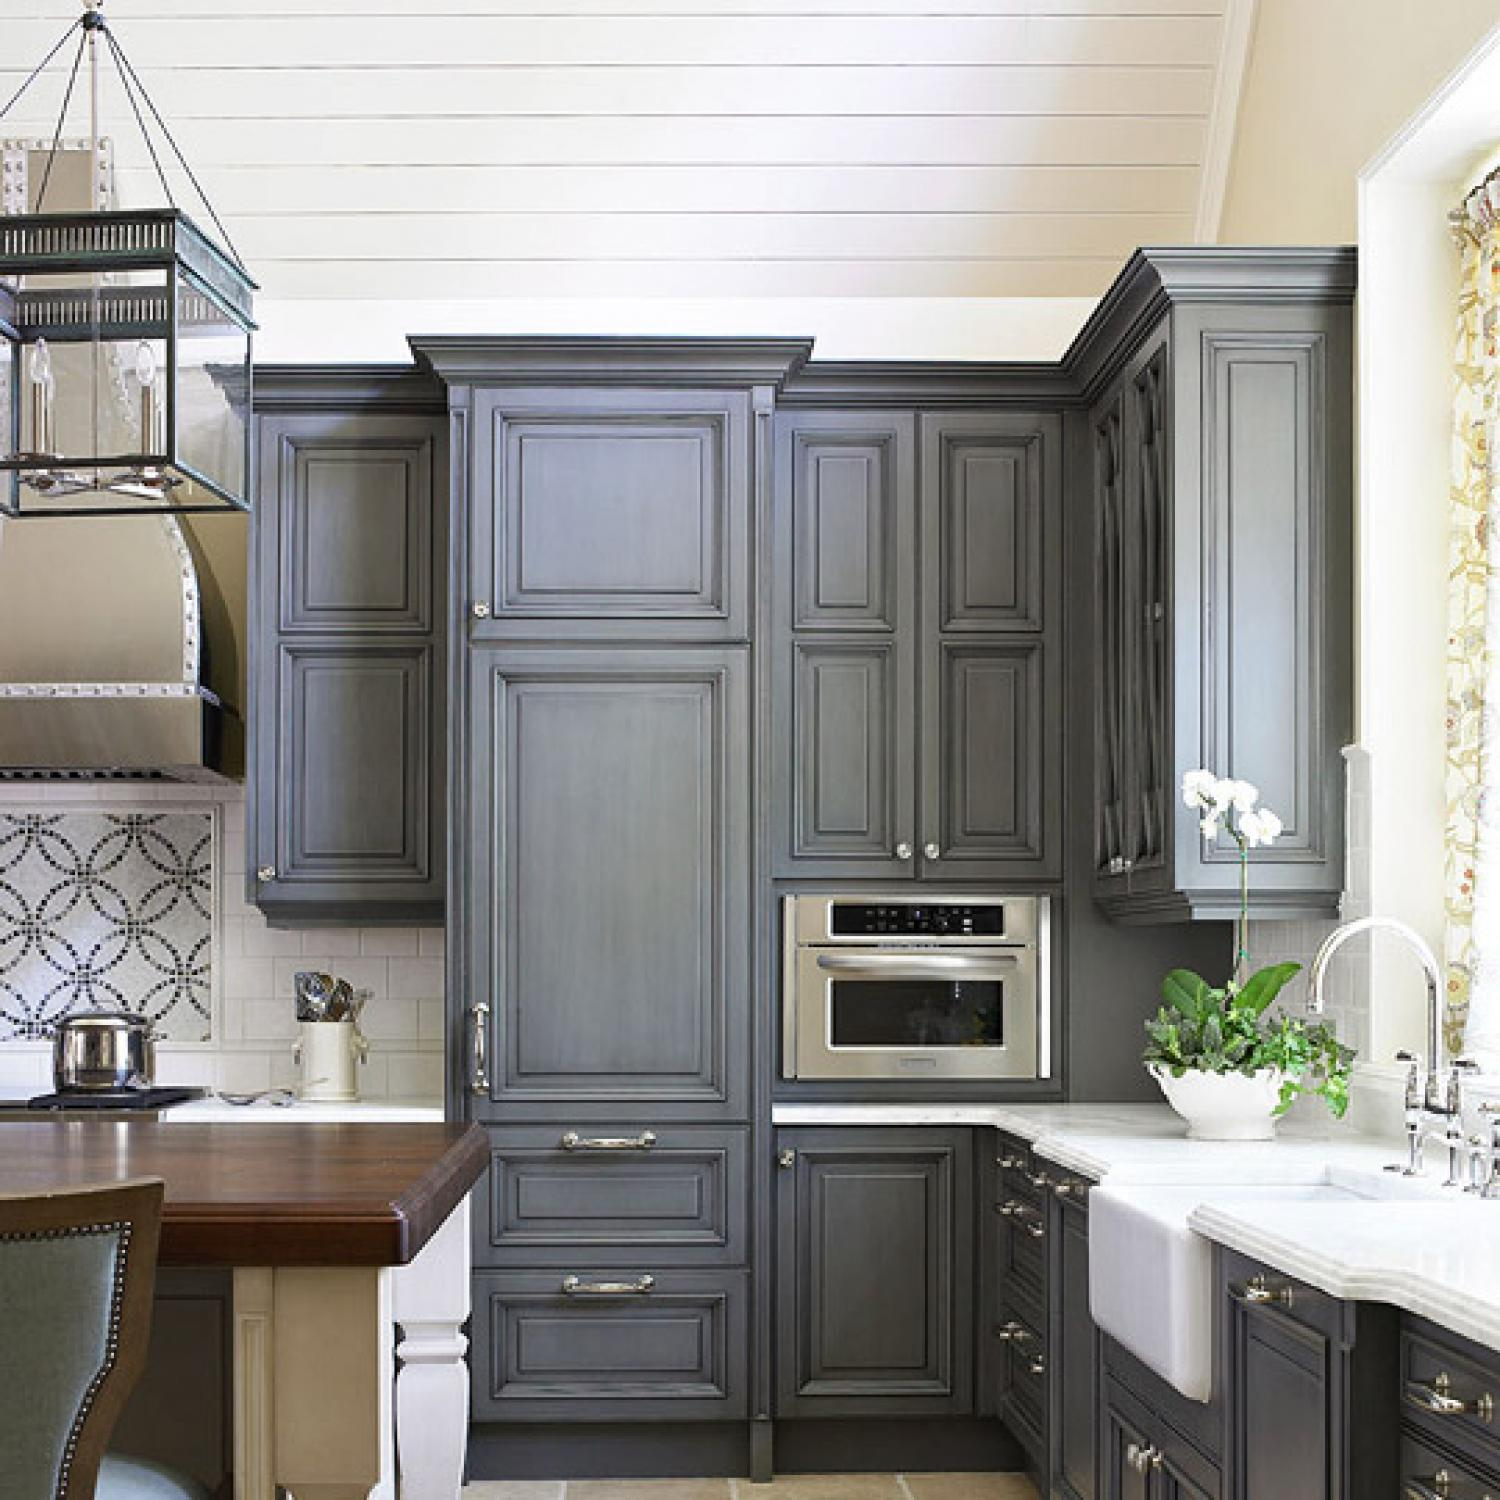 Kitchen Cabinet Stain Ideas: Kitchen Cabinets With Furniture-Style Flair